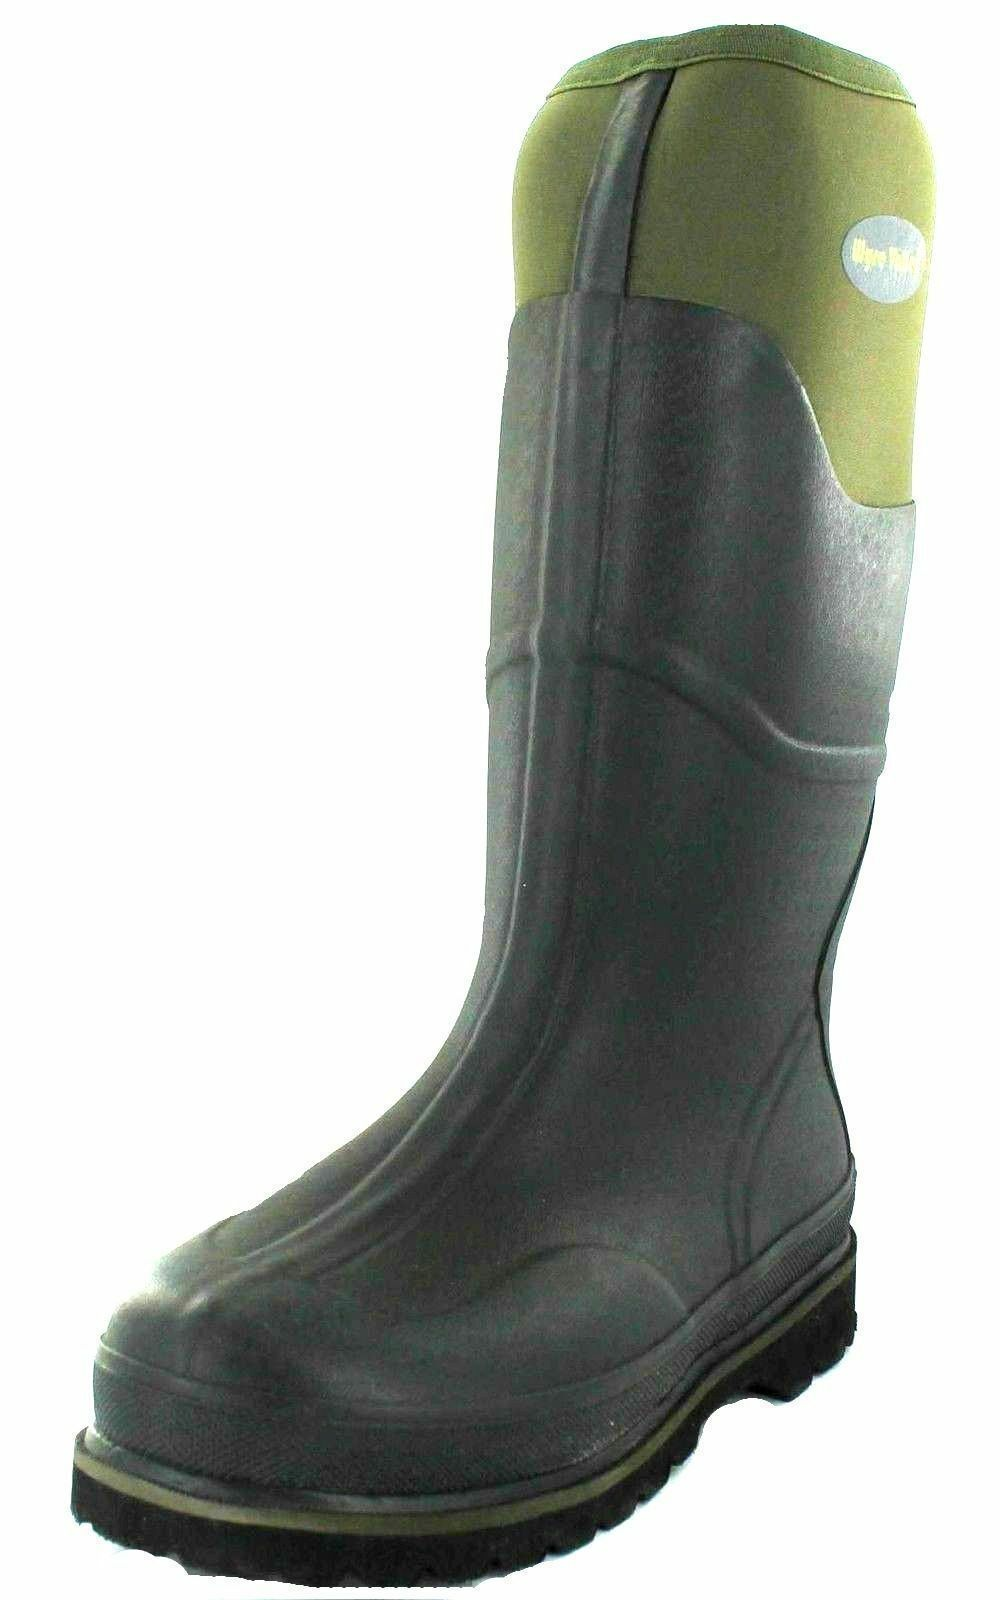 Mens Wyre Valley Wellington Boots 'Trent' Colour- Green- Great Price